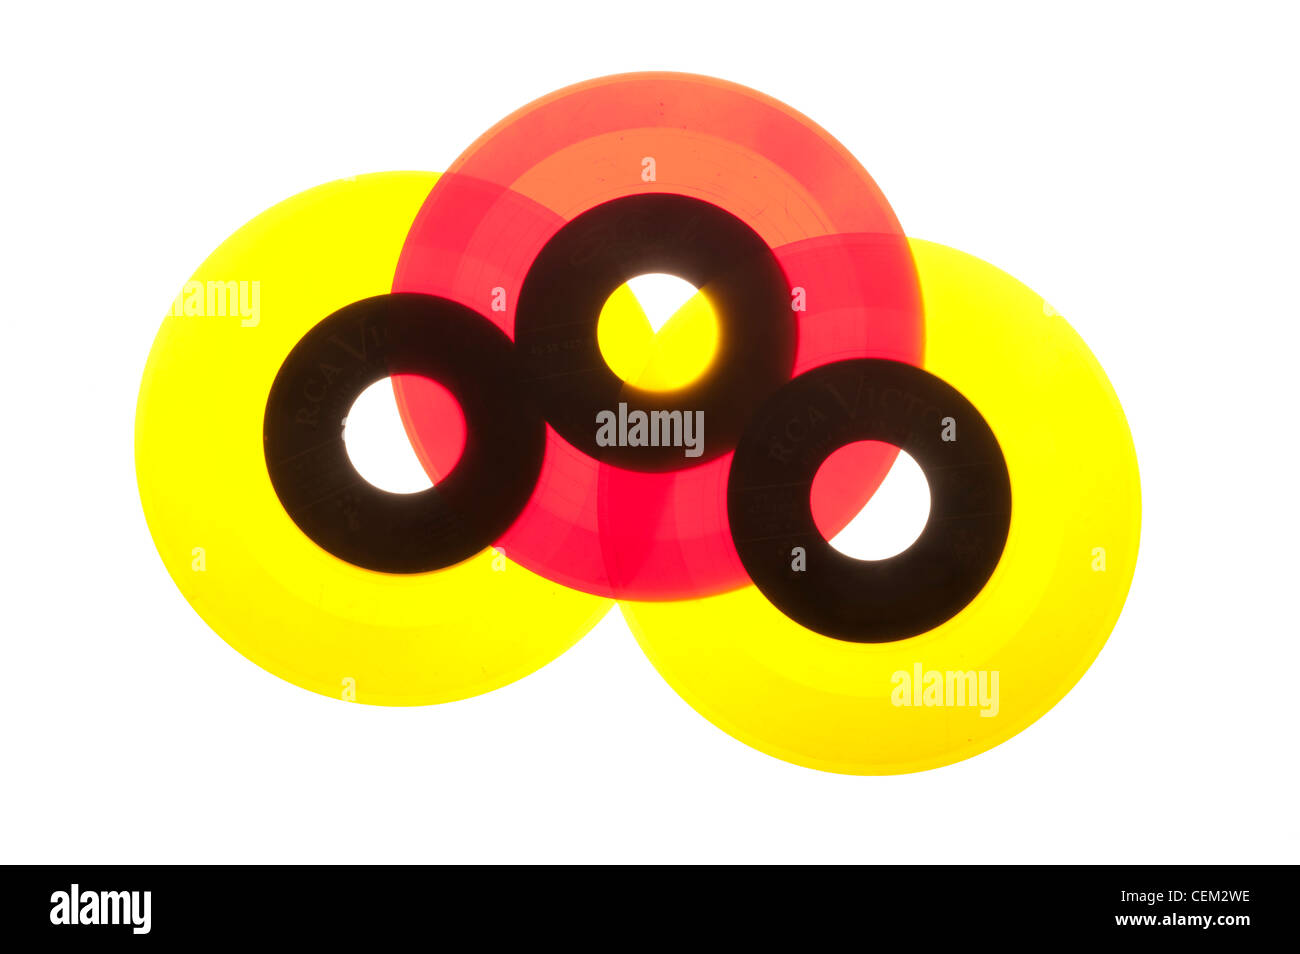 45 RPM records from the 1950's mid-century modern, Vinyl. - Stock Image